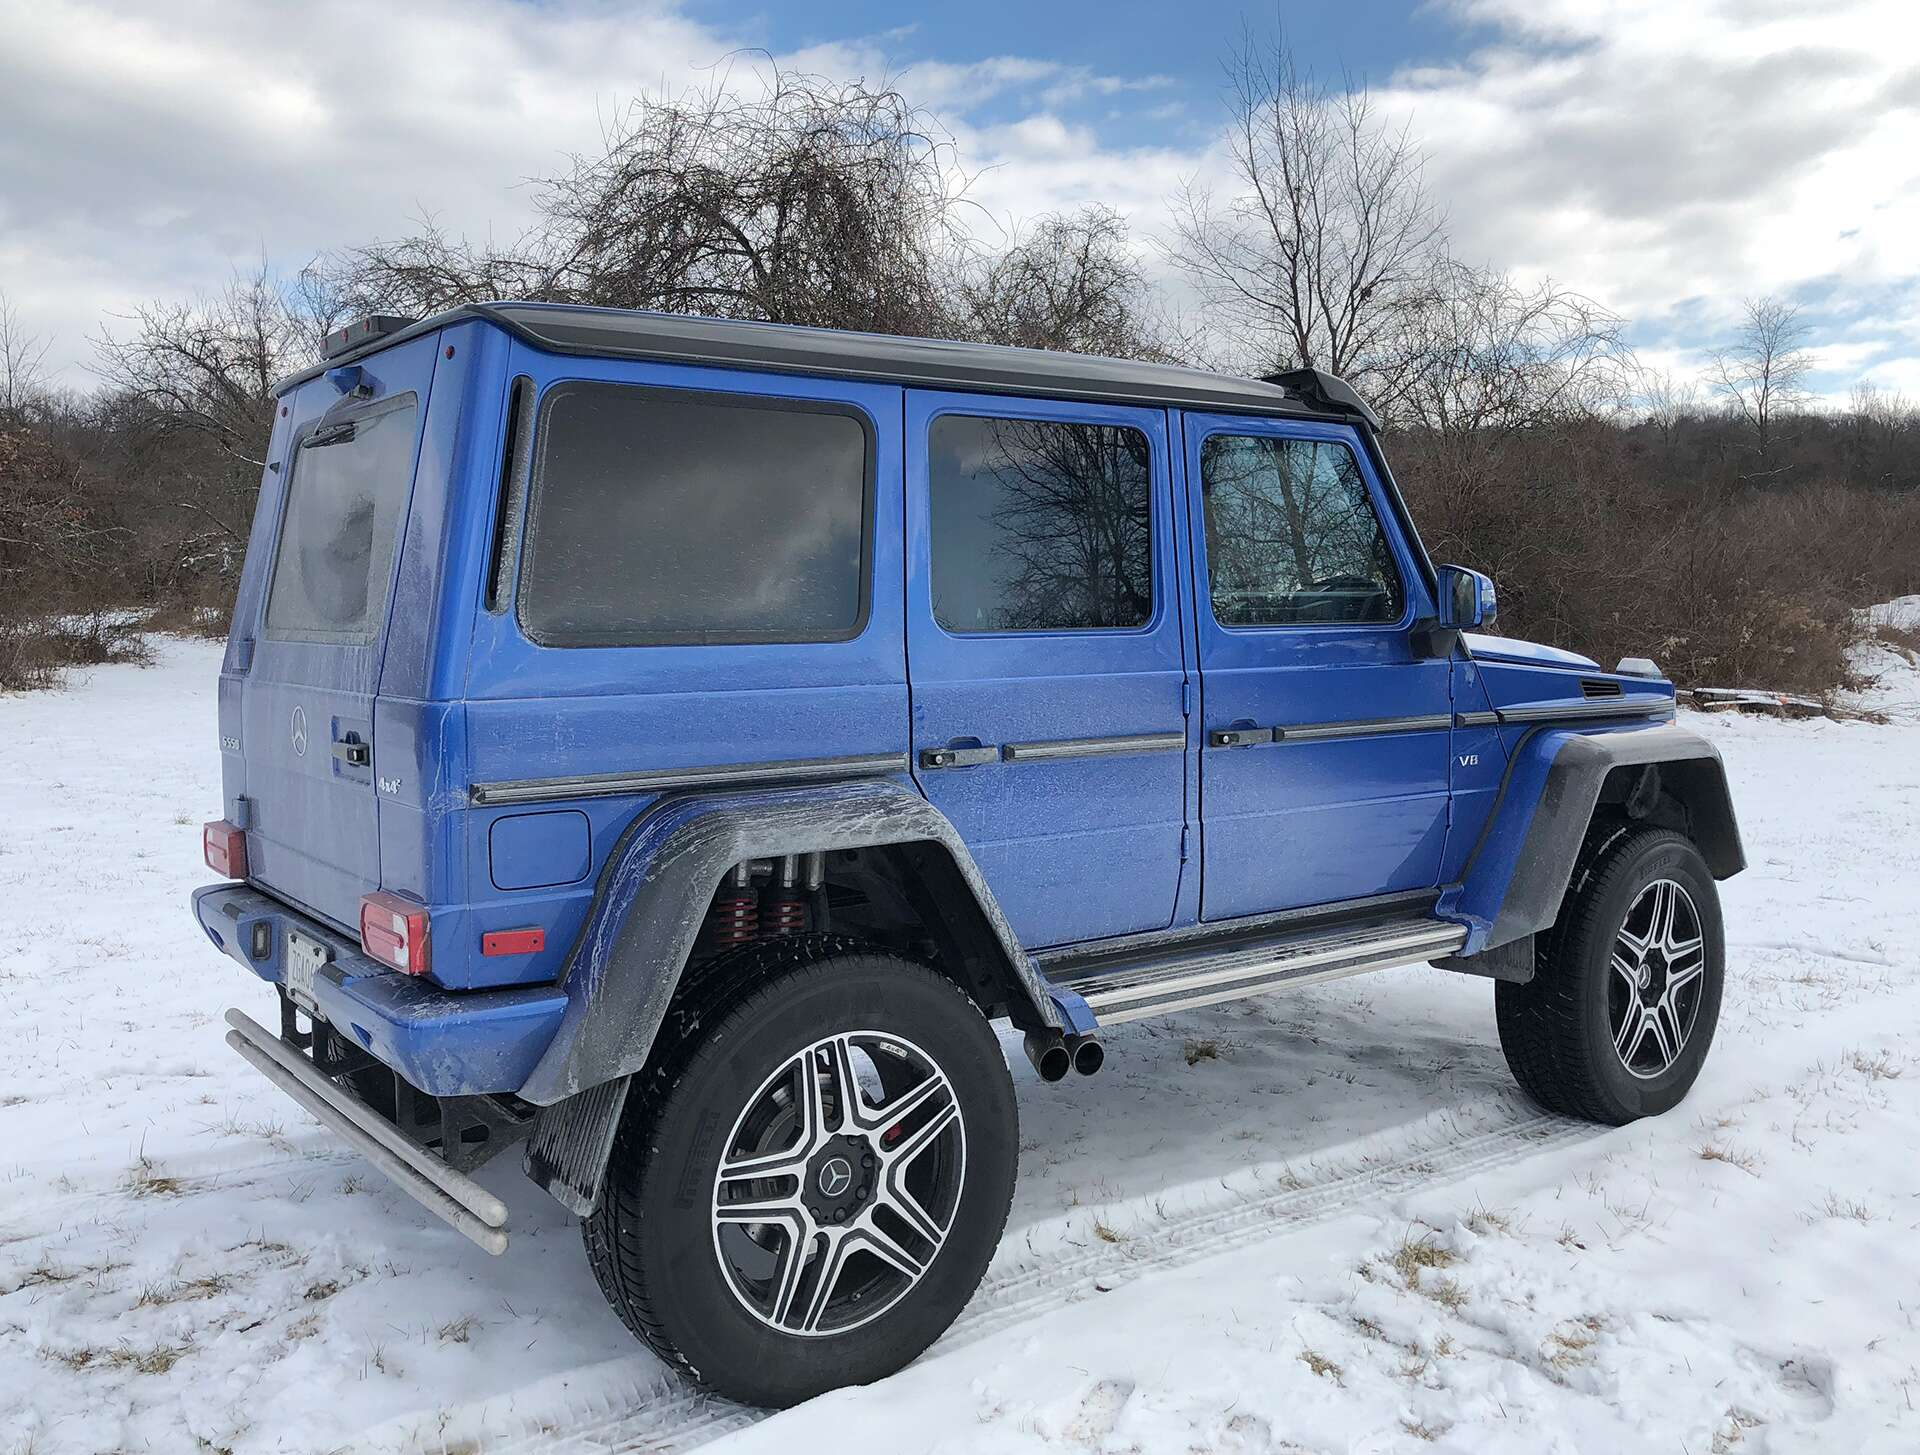 2018 mercedes benz g550 4x4 squared review 230 000 and. Black Bedroom Furniture Sets. Home Design Ideas